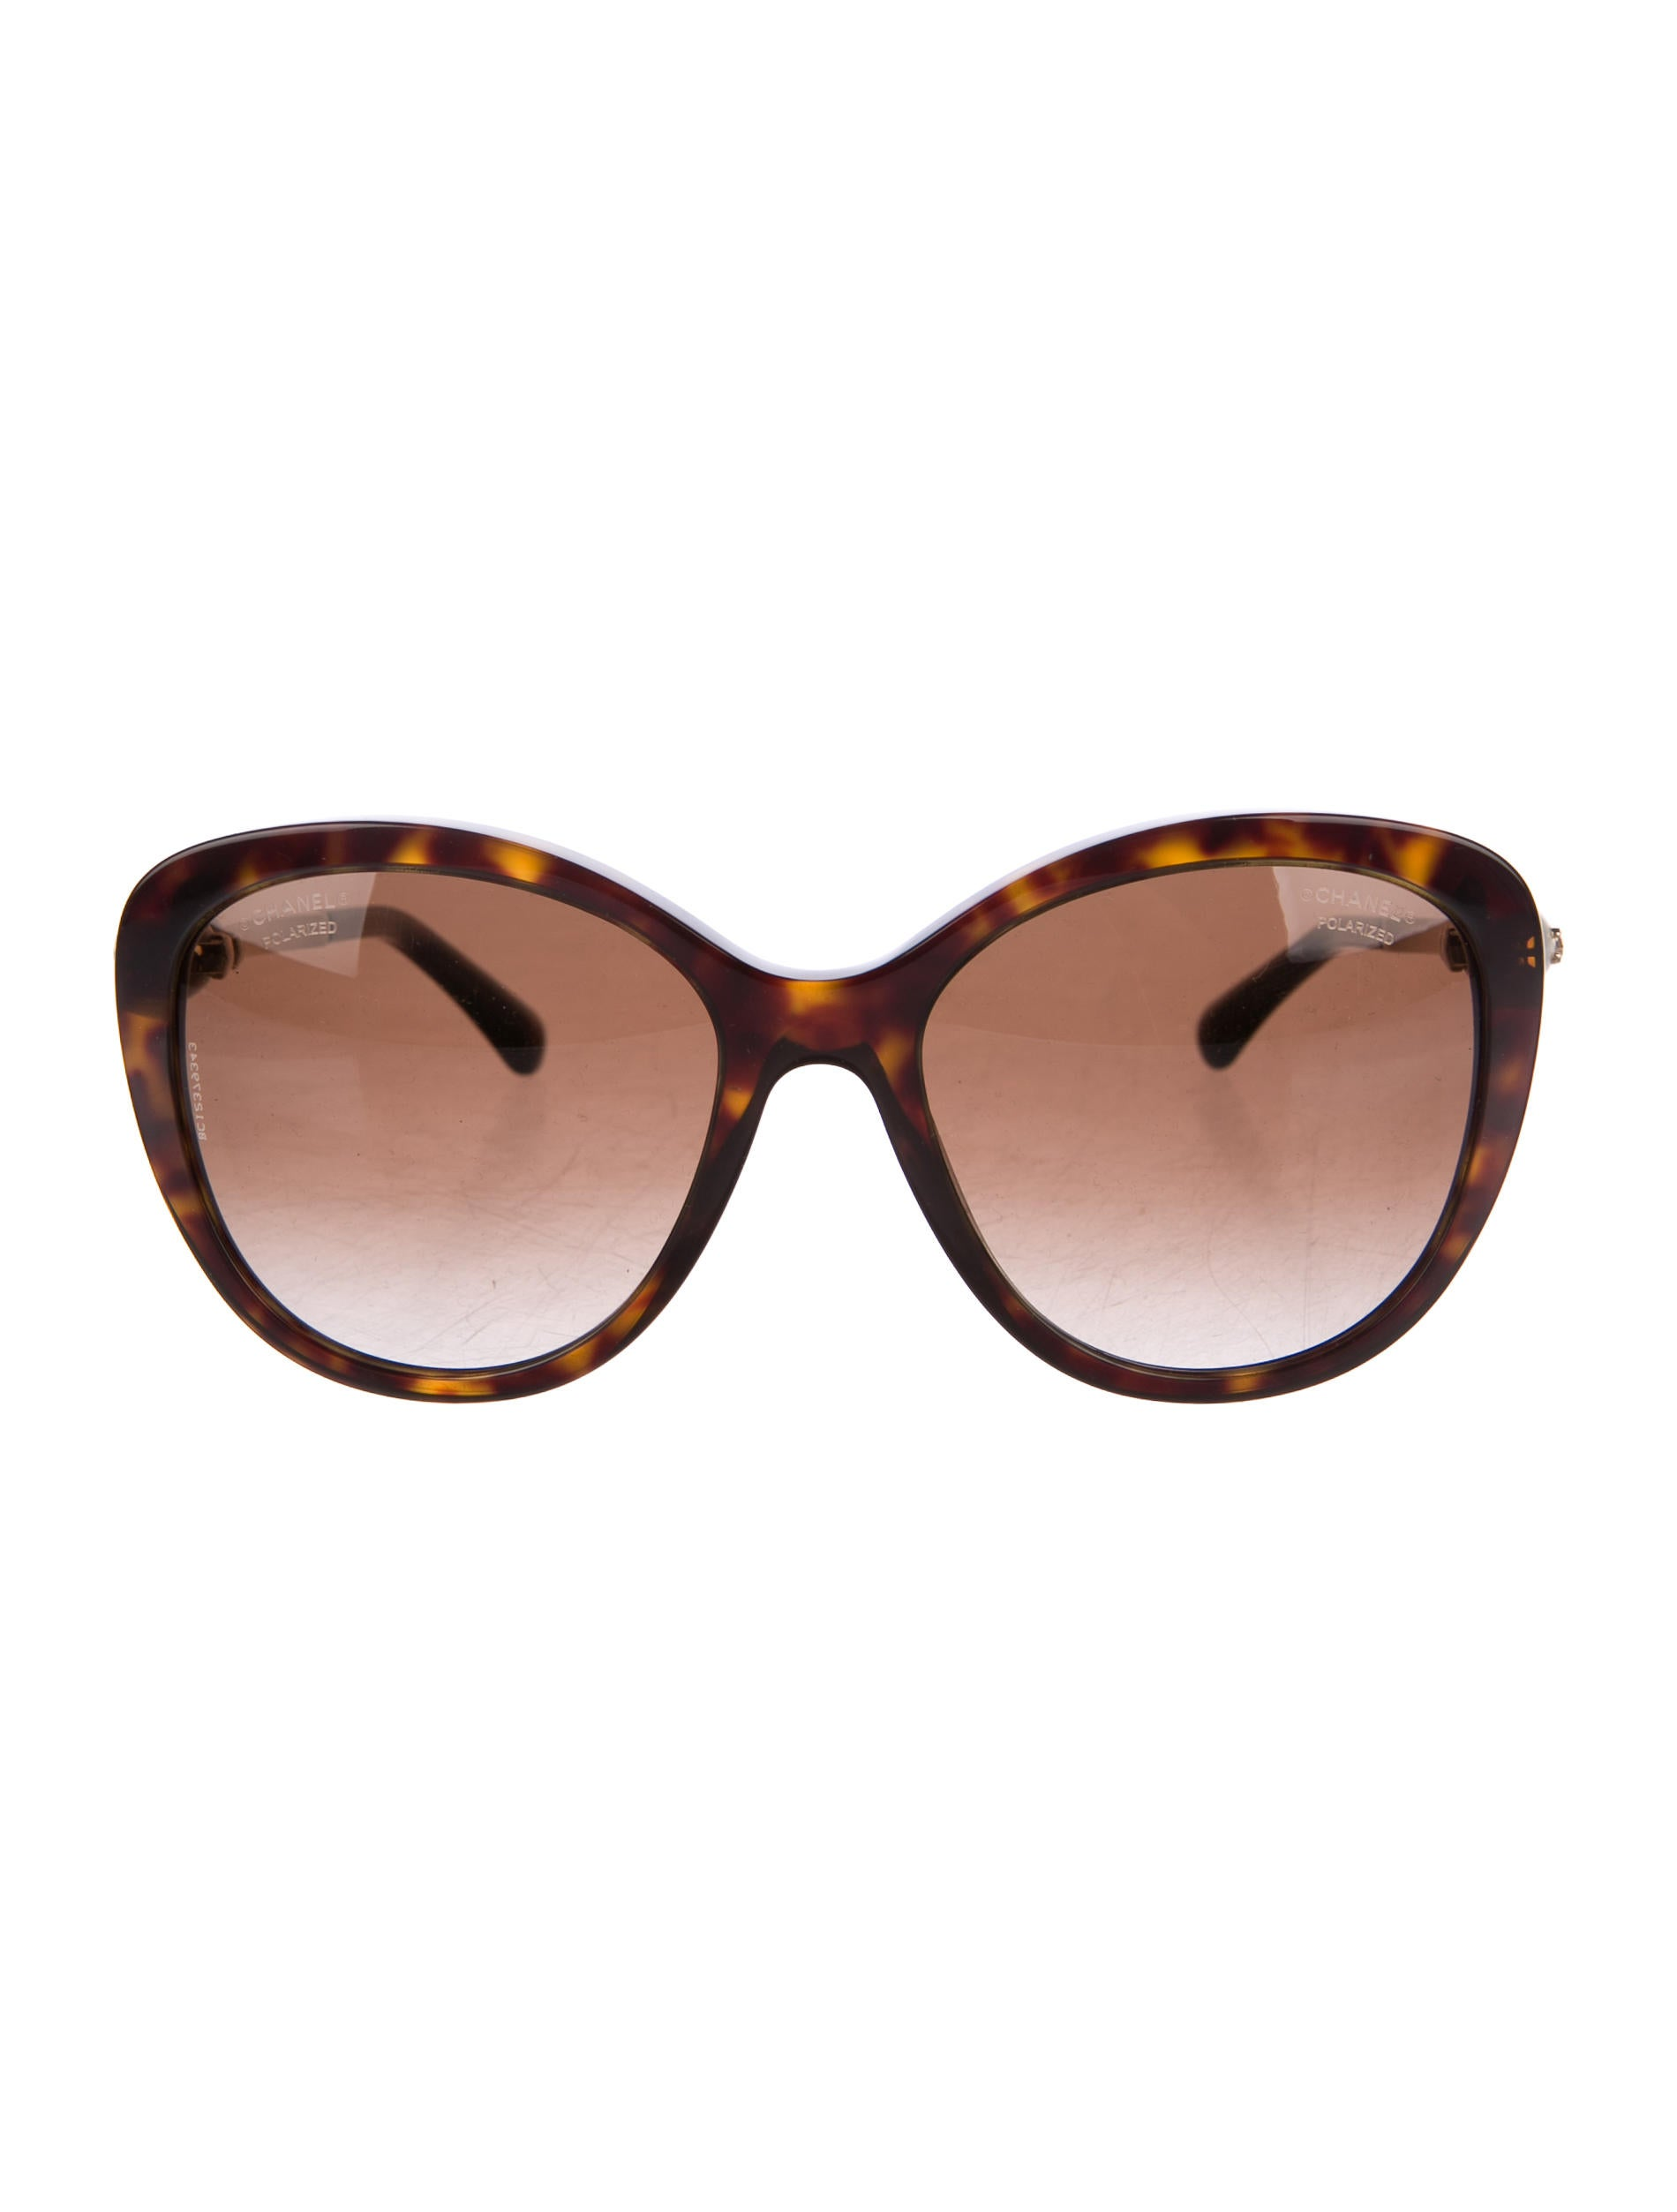 1aac2d0c192 Chanel Butterfly Eyeglasses - Bitterroot Public Library